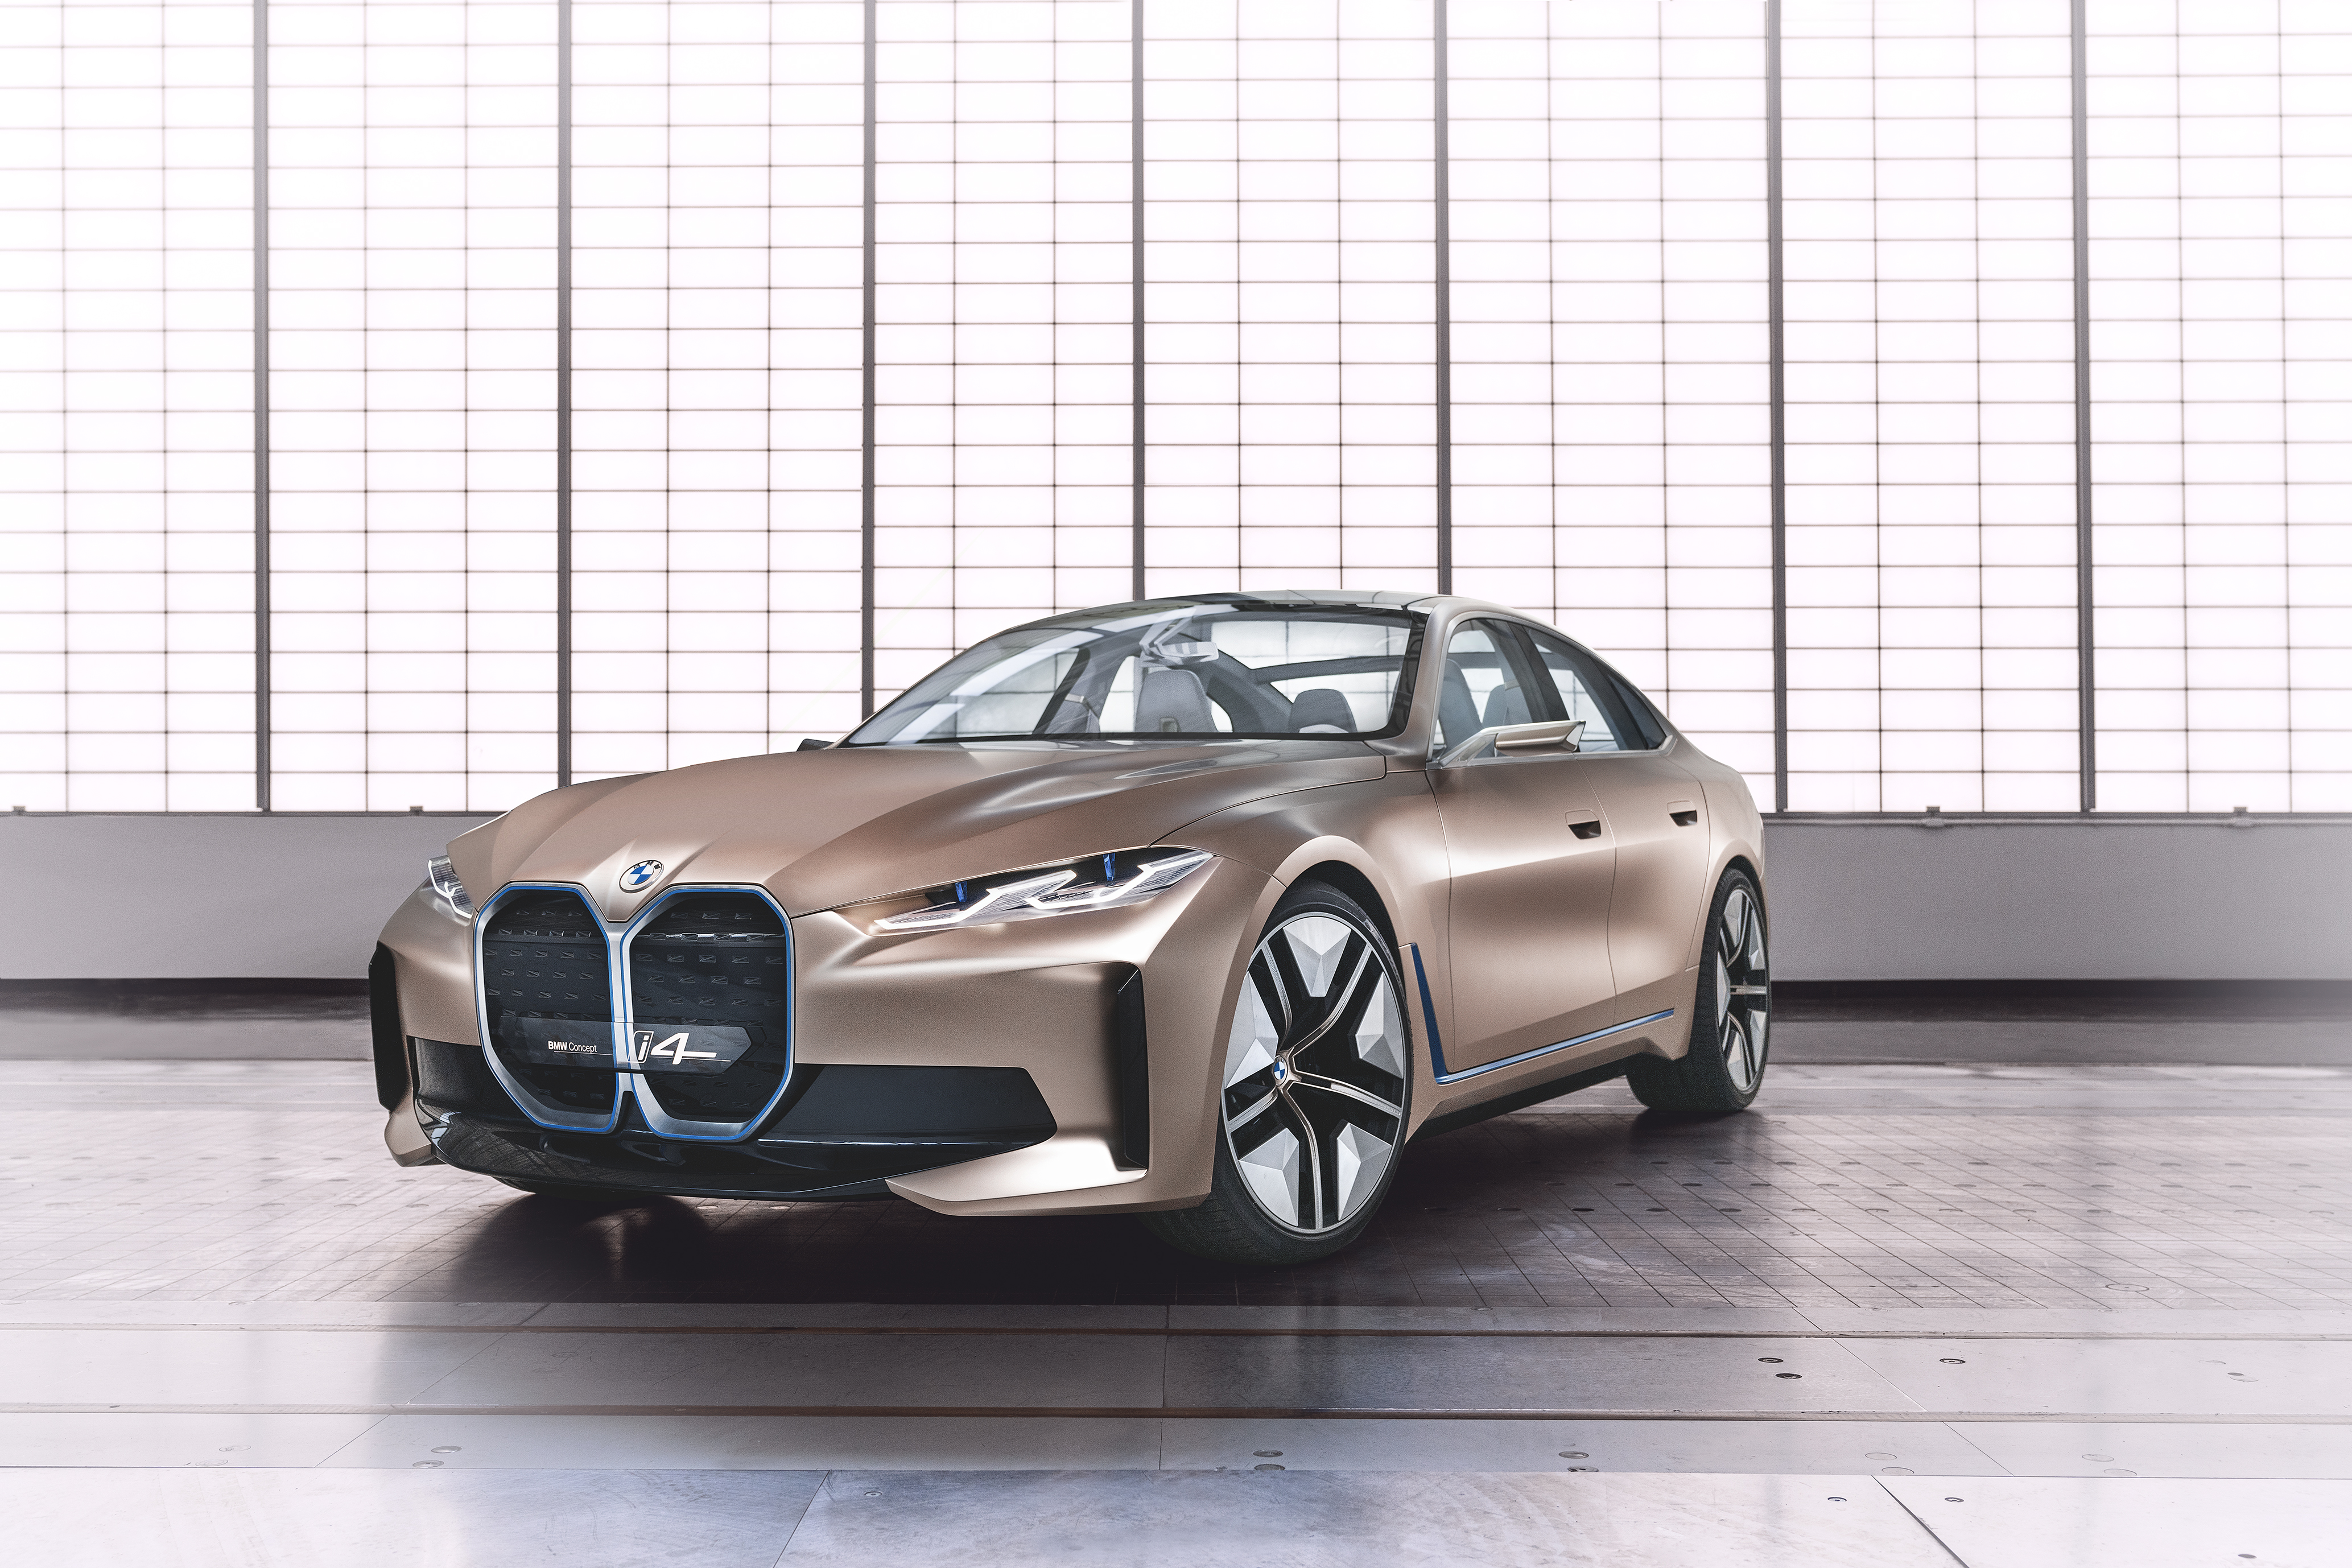 Bmw Unveils I4 Electric Car A Stunning Gran Coupe With A Massive